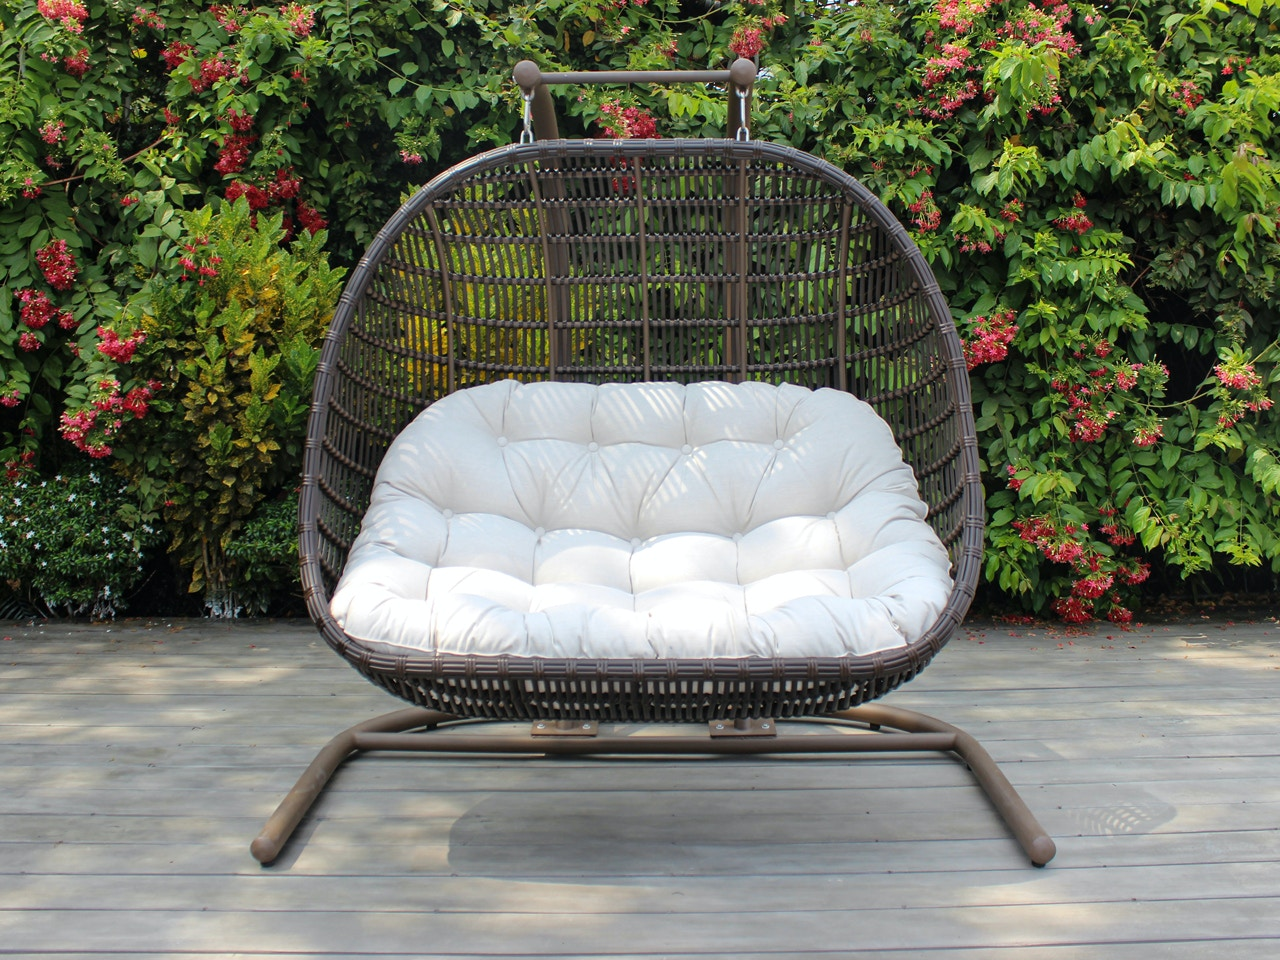 Living Room Chocolate Outdoor Wicker With Cast Pumice Cushion Hanging Double Chair Swing 7813746